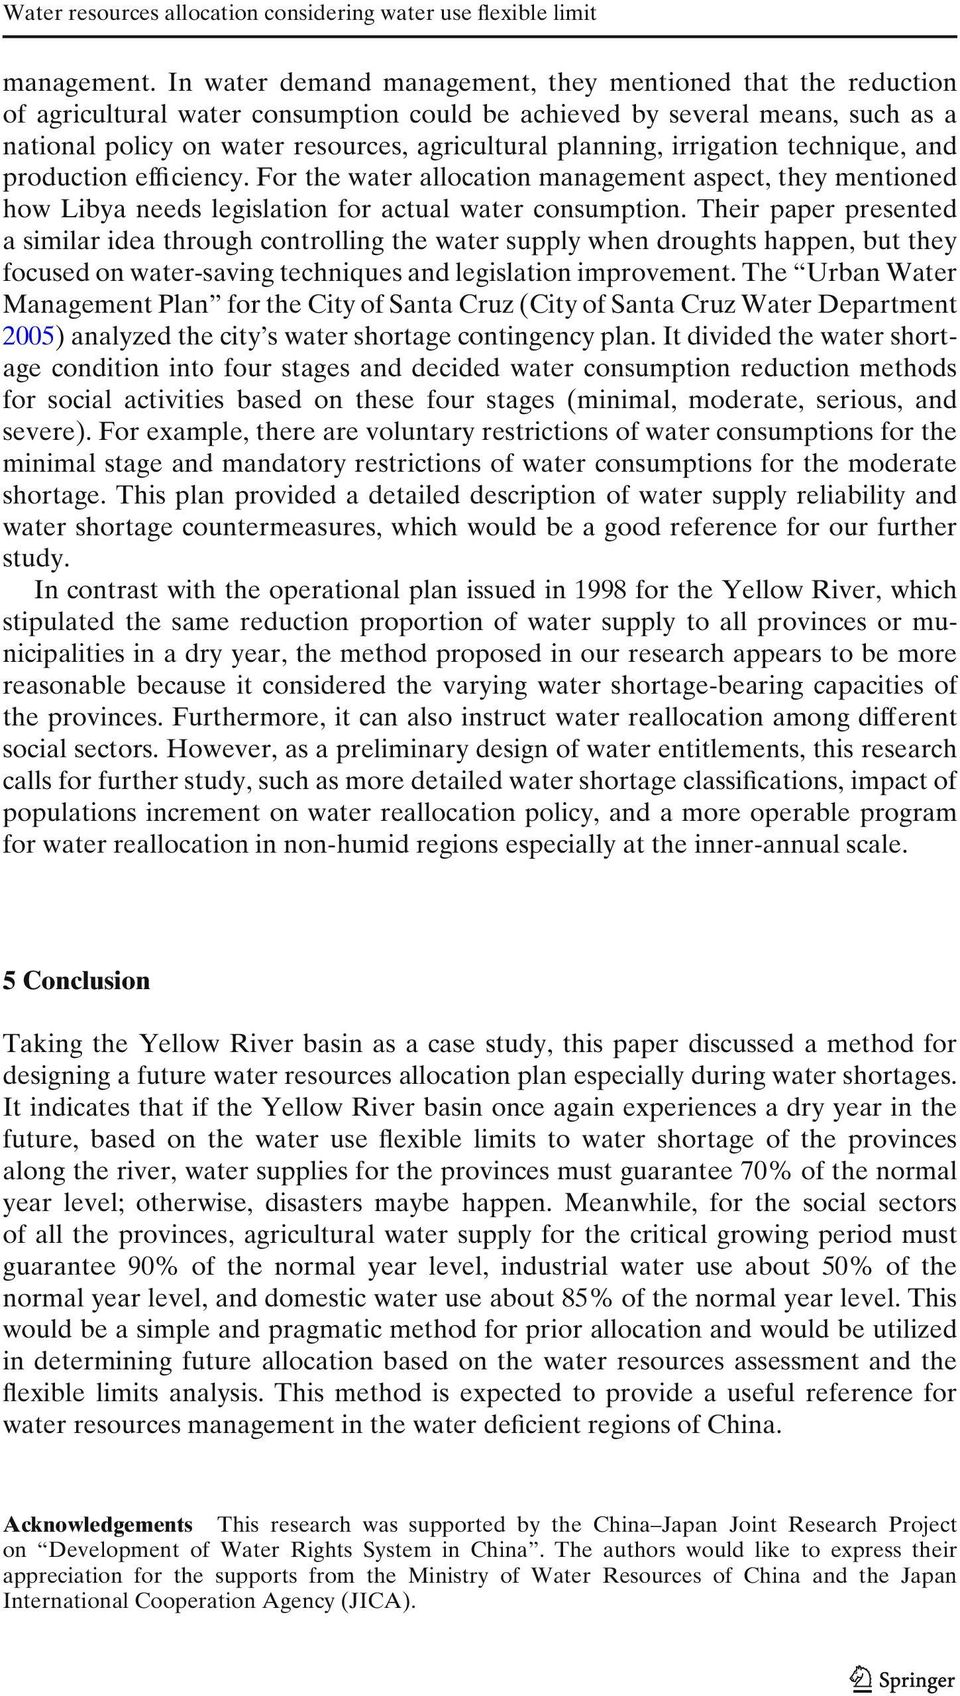 planning, irrigation technique, and production efficiency. For the water allocation management aspect, they mentioned how Libya needs legislation for actual water consumption.